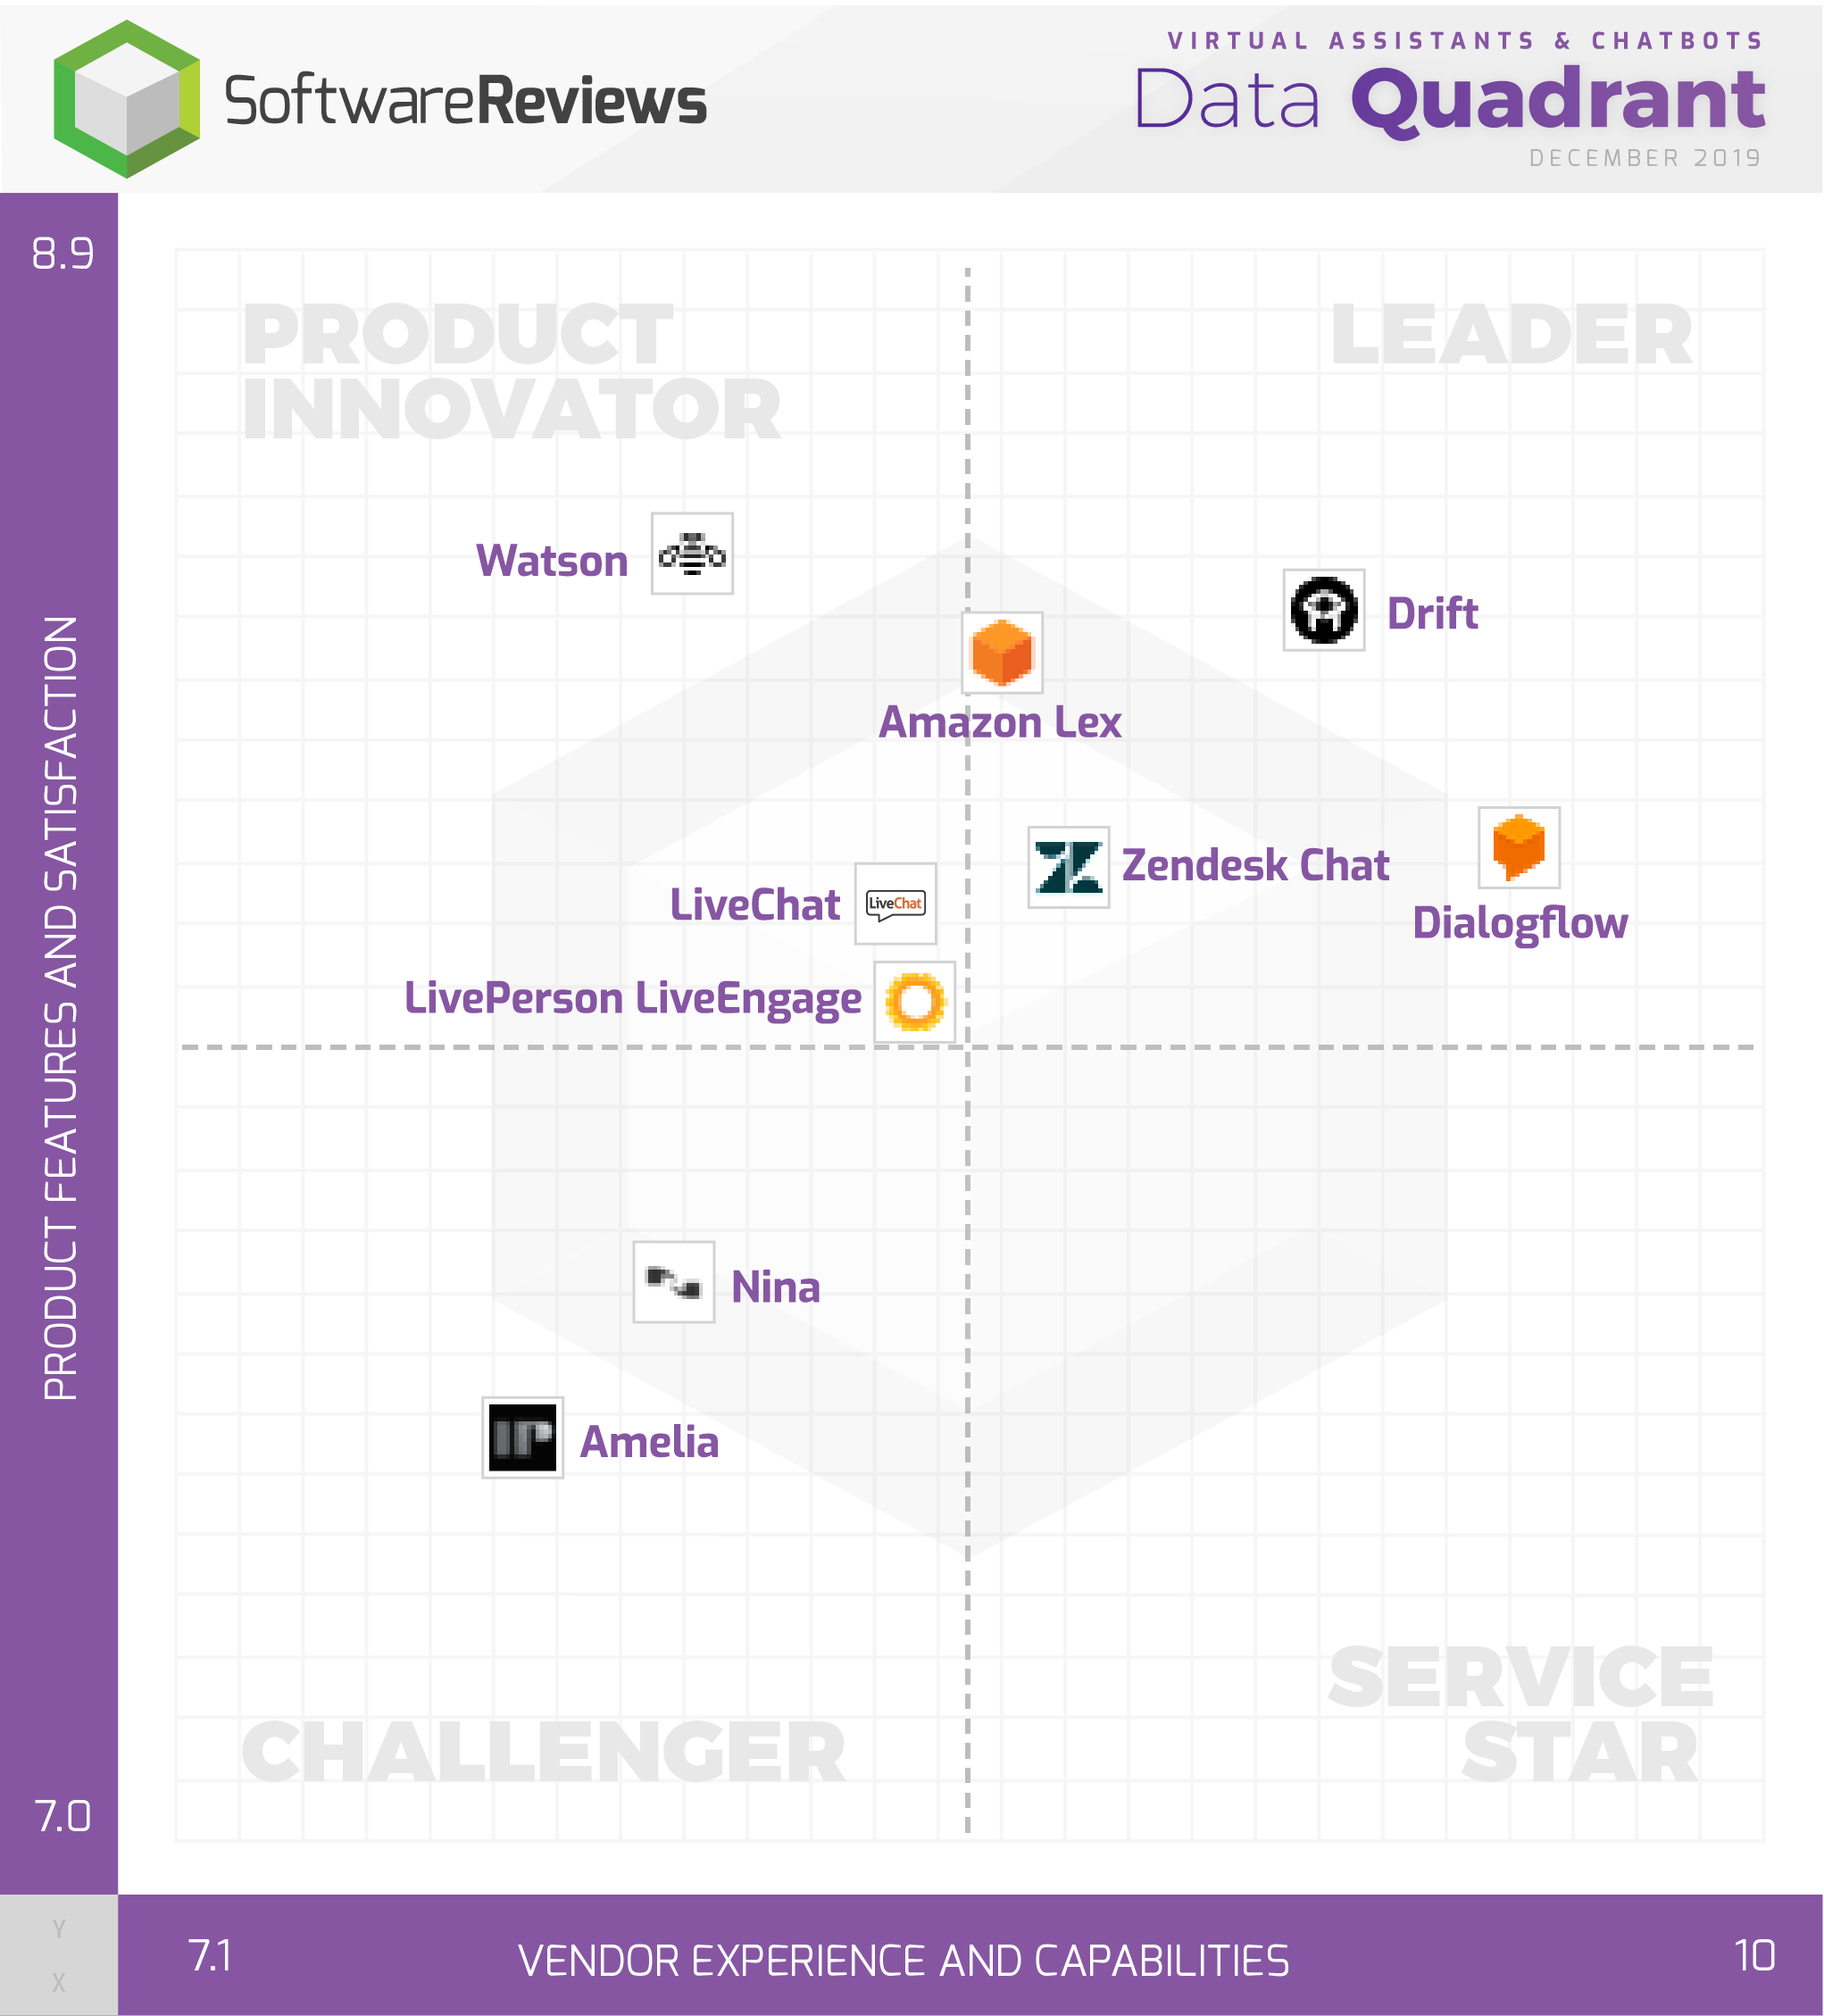 Virtual Assistants & Chatbots Data Quadrant